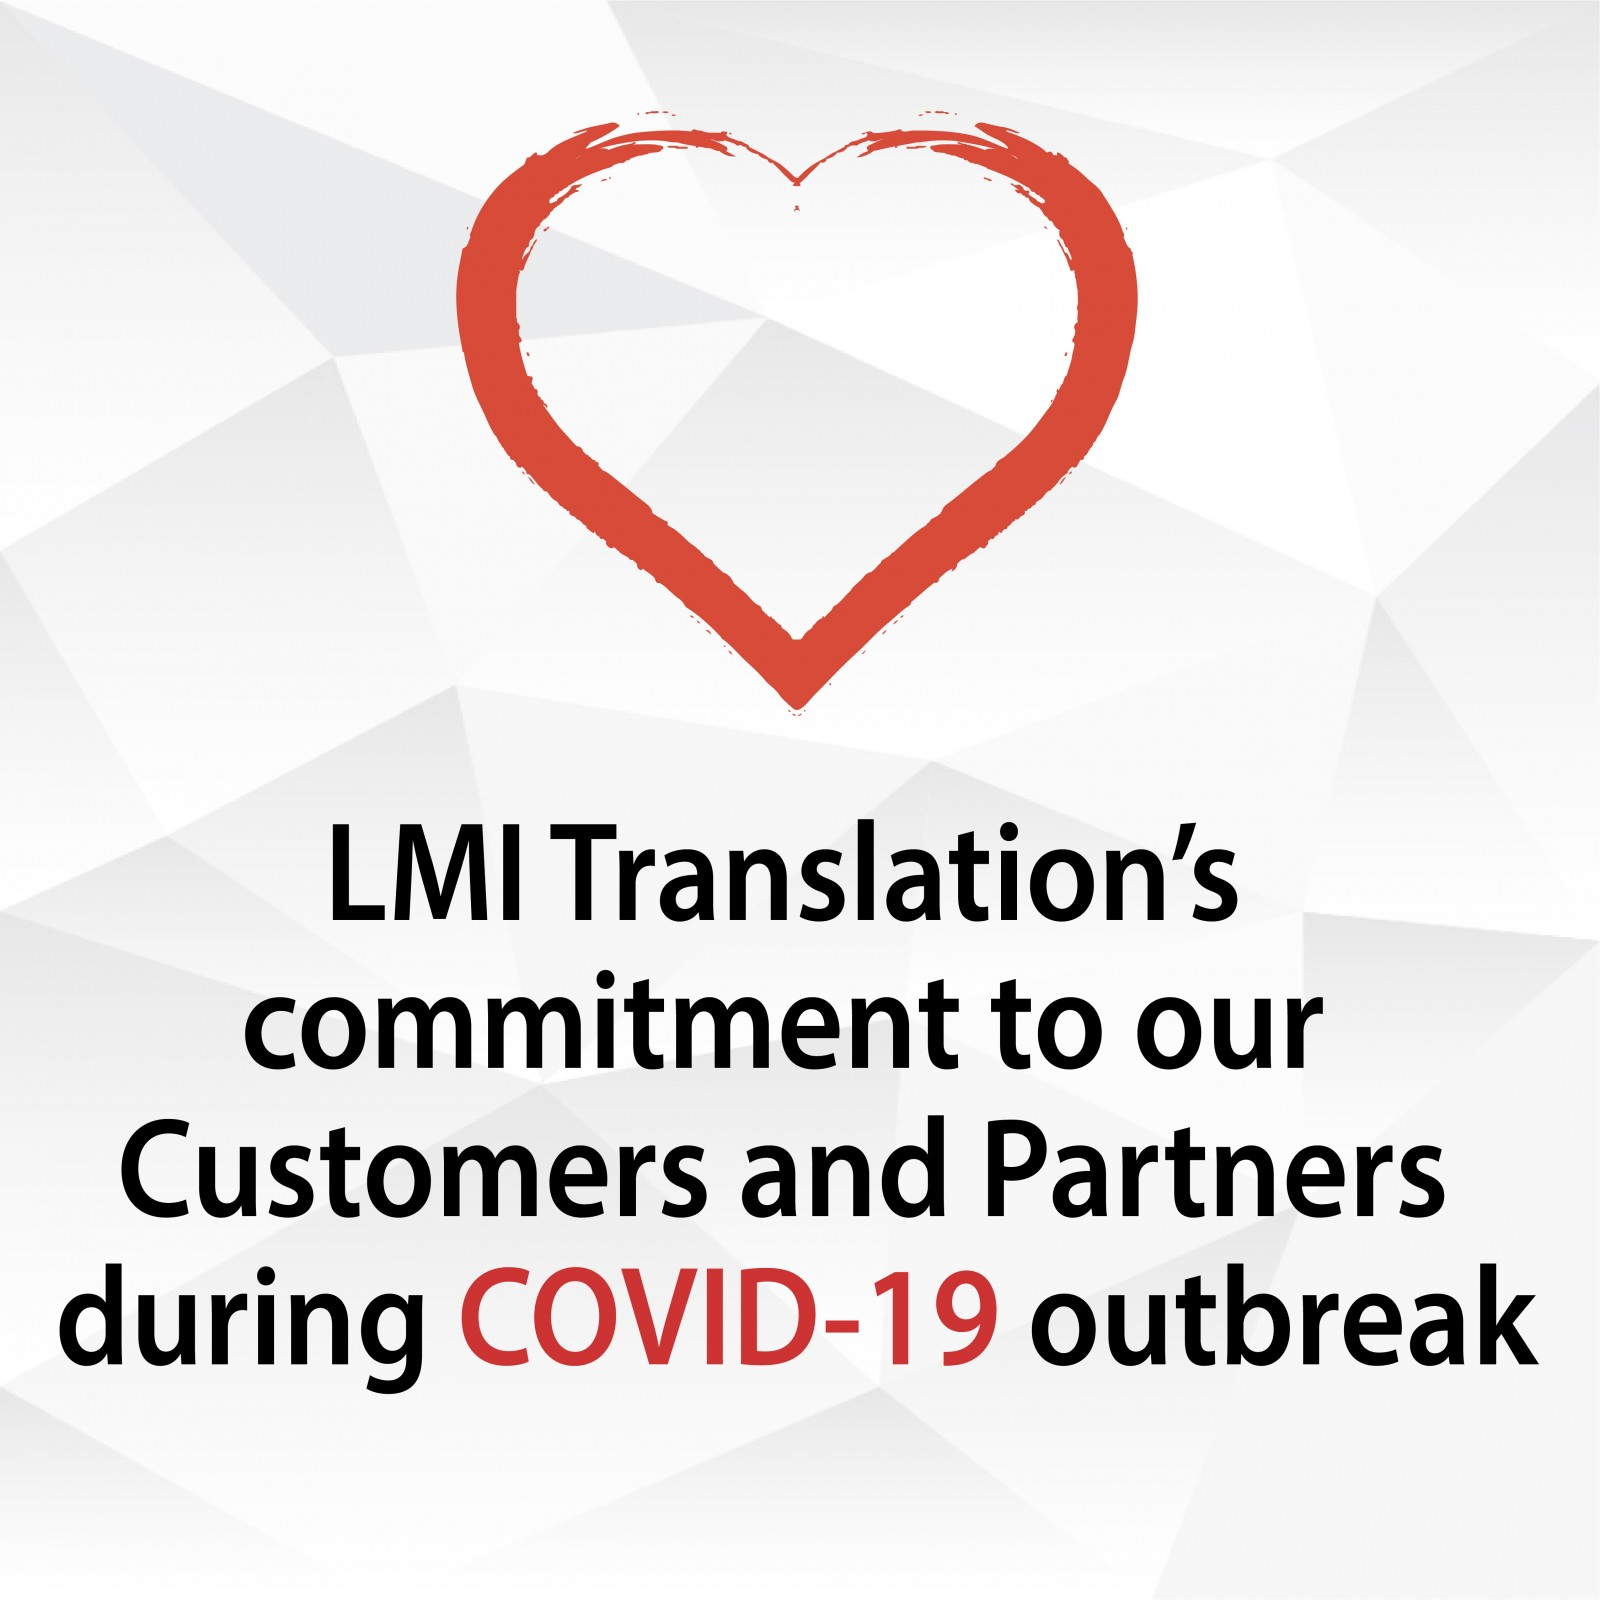 LMI Translation's commitment to Clients and Partners